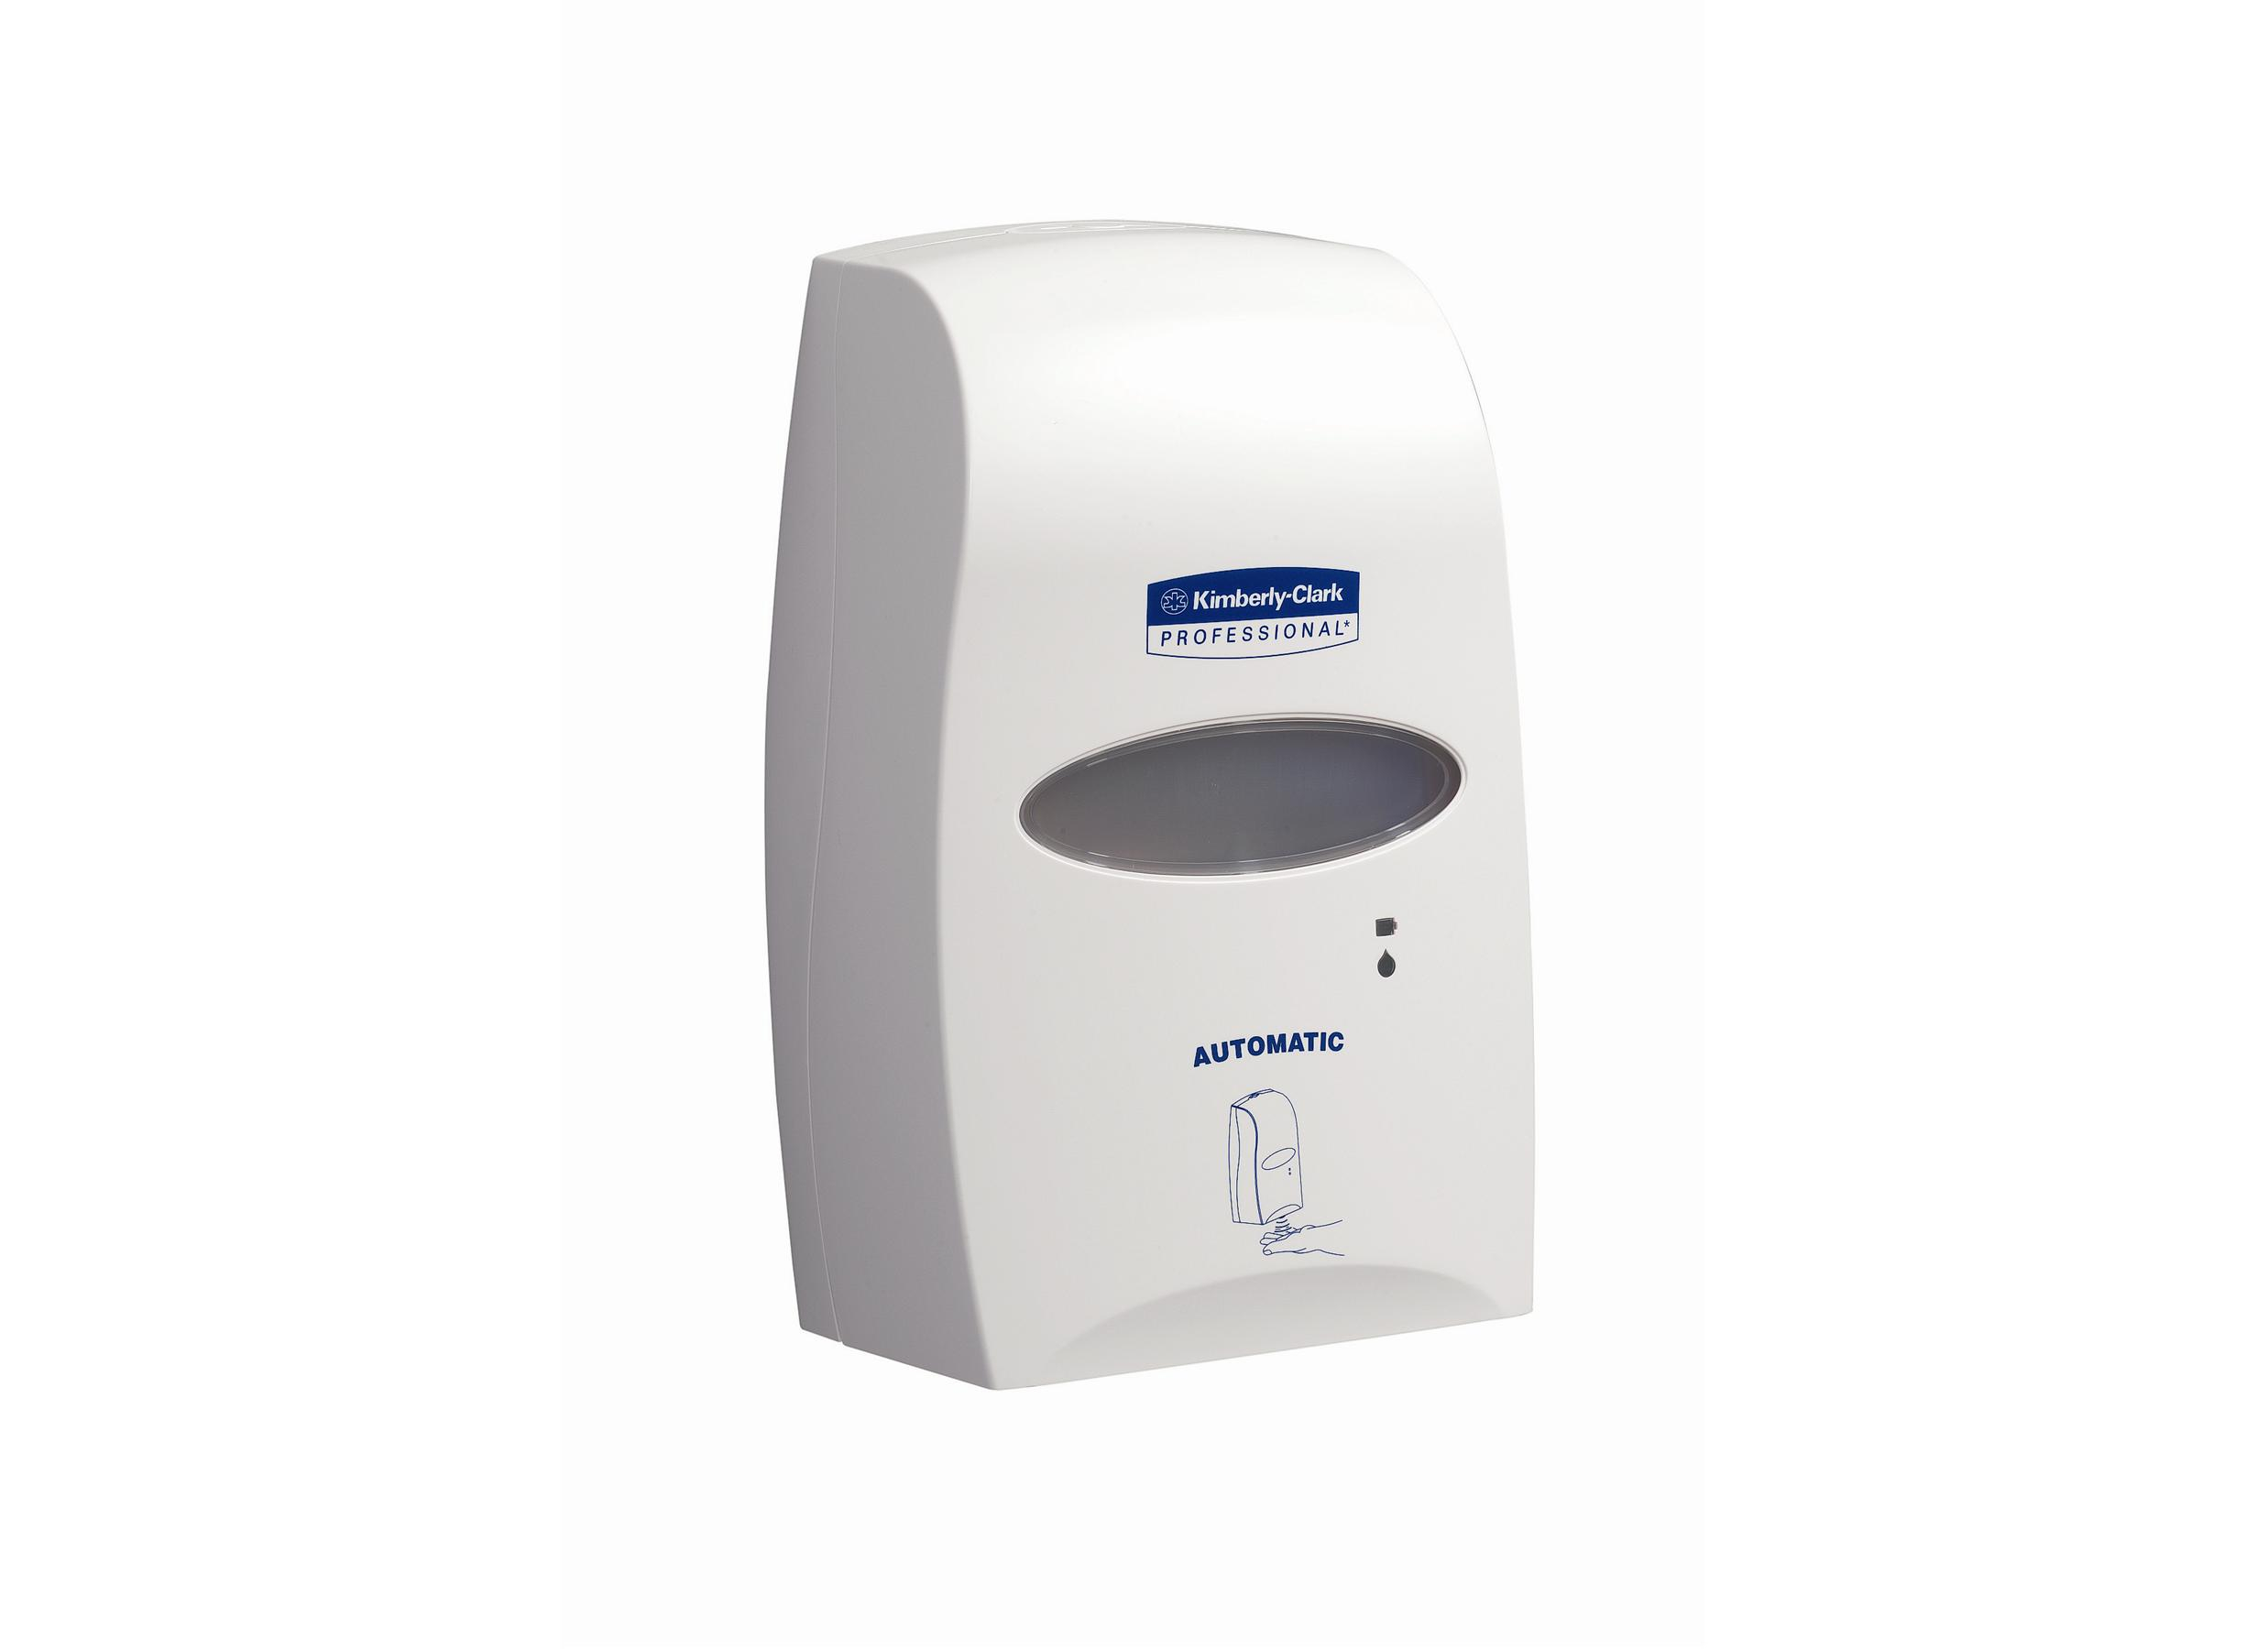 Kimberly-Clark Professional Touchless Electric Dispenser